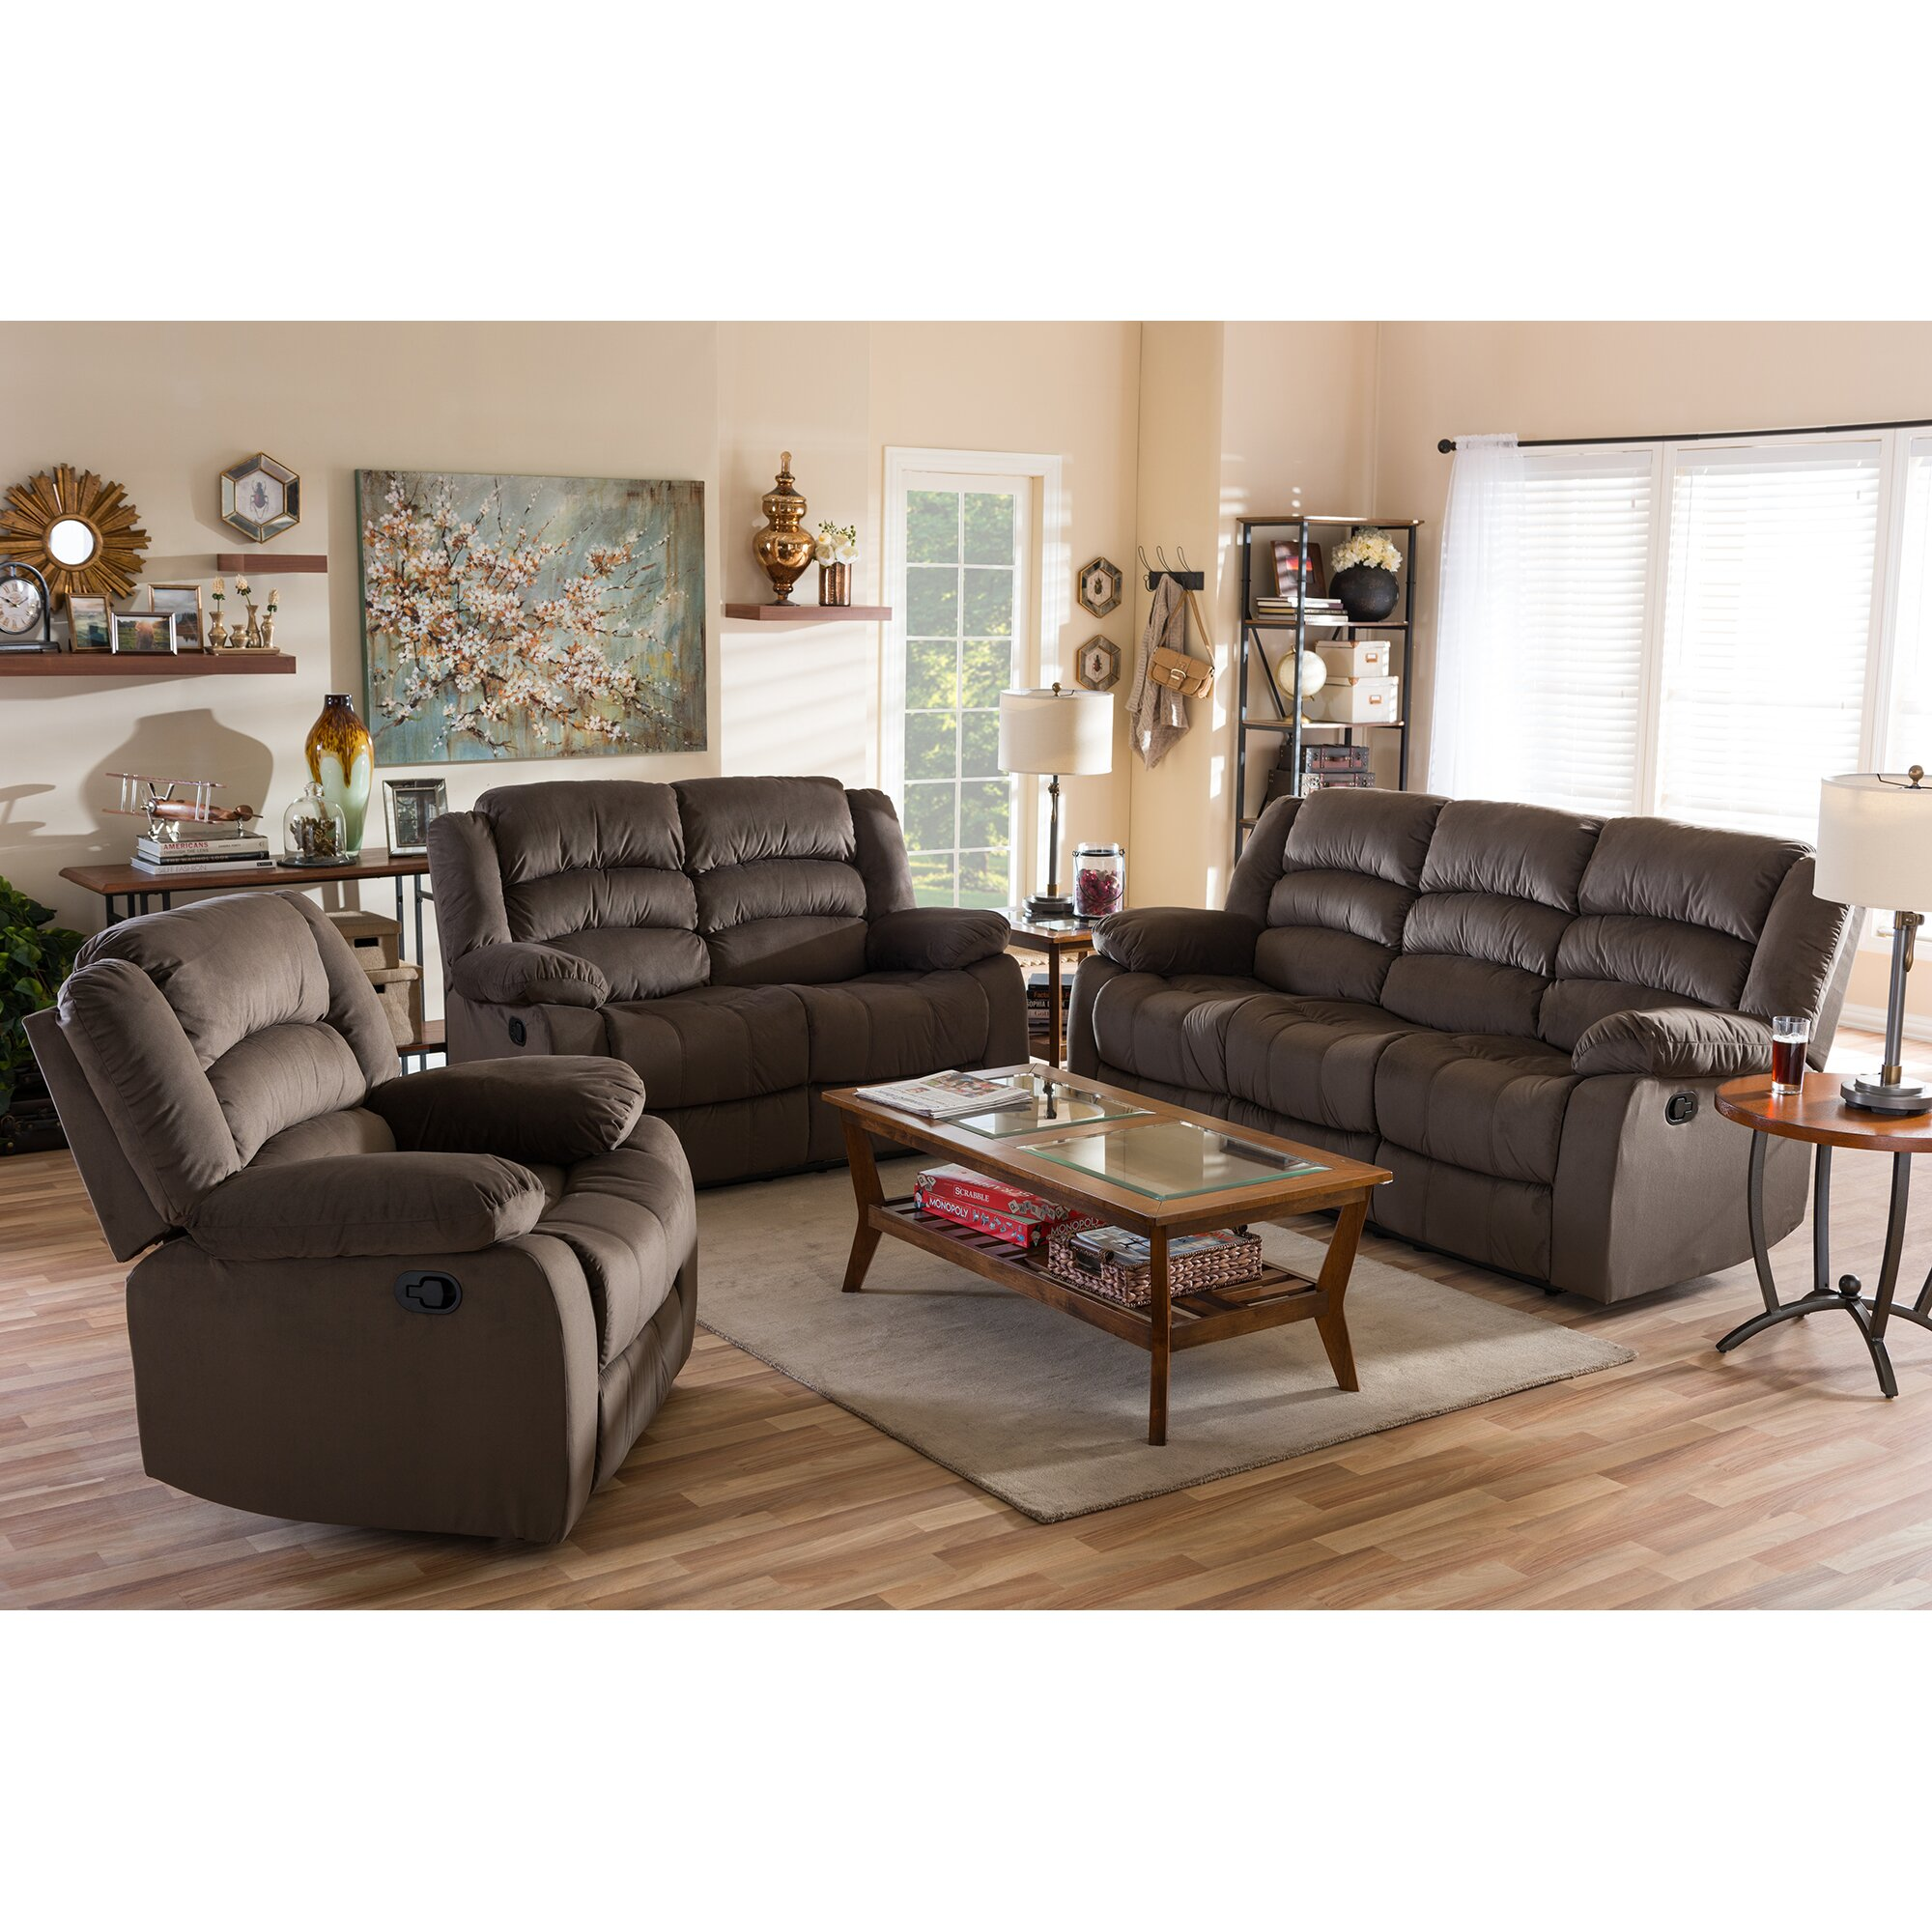 Baxton studio abele 3 piece living room set wayfair for Whole living room furniture sets